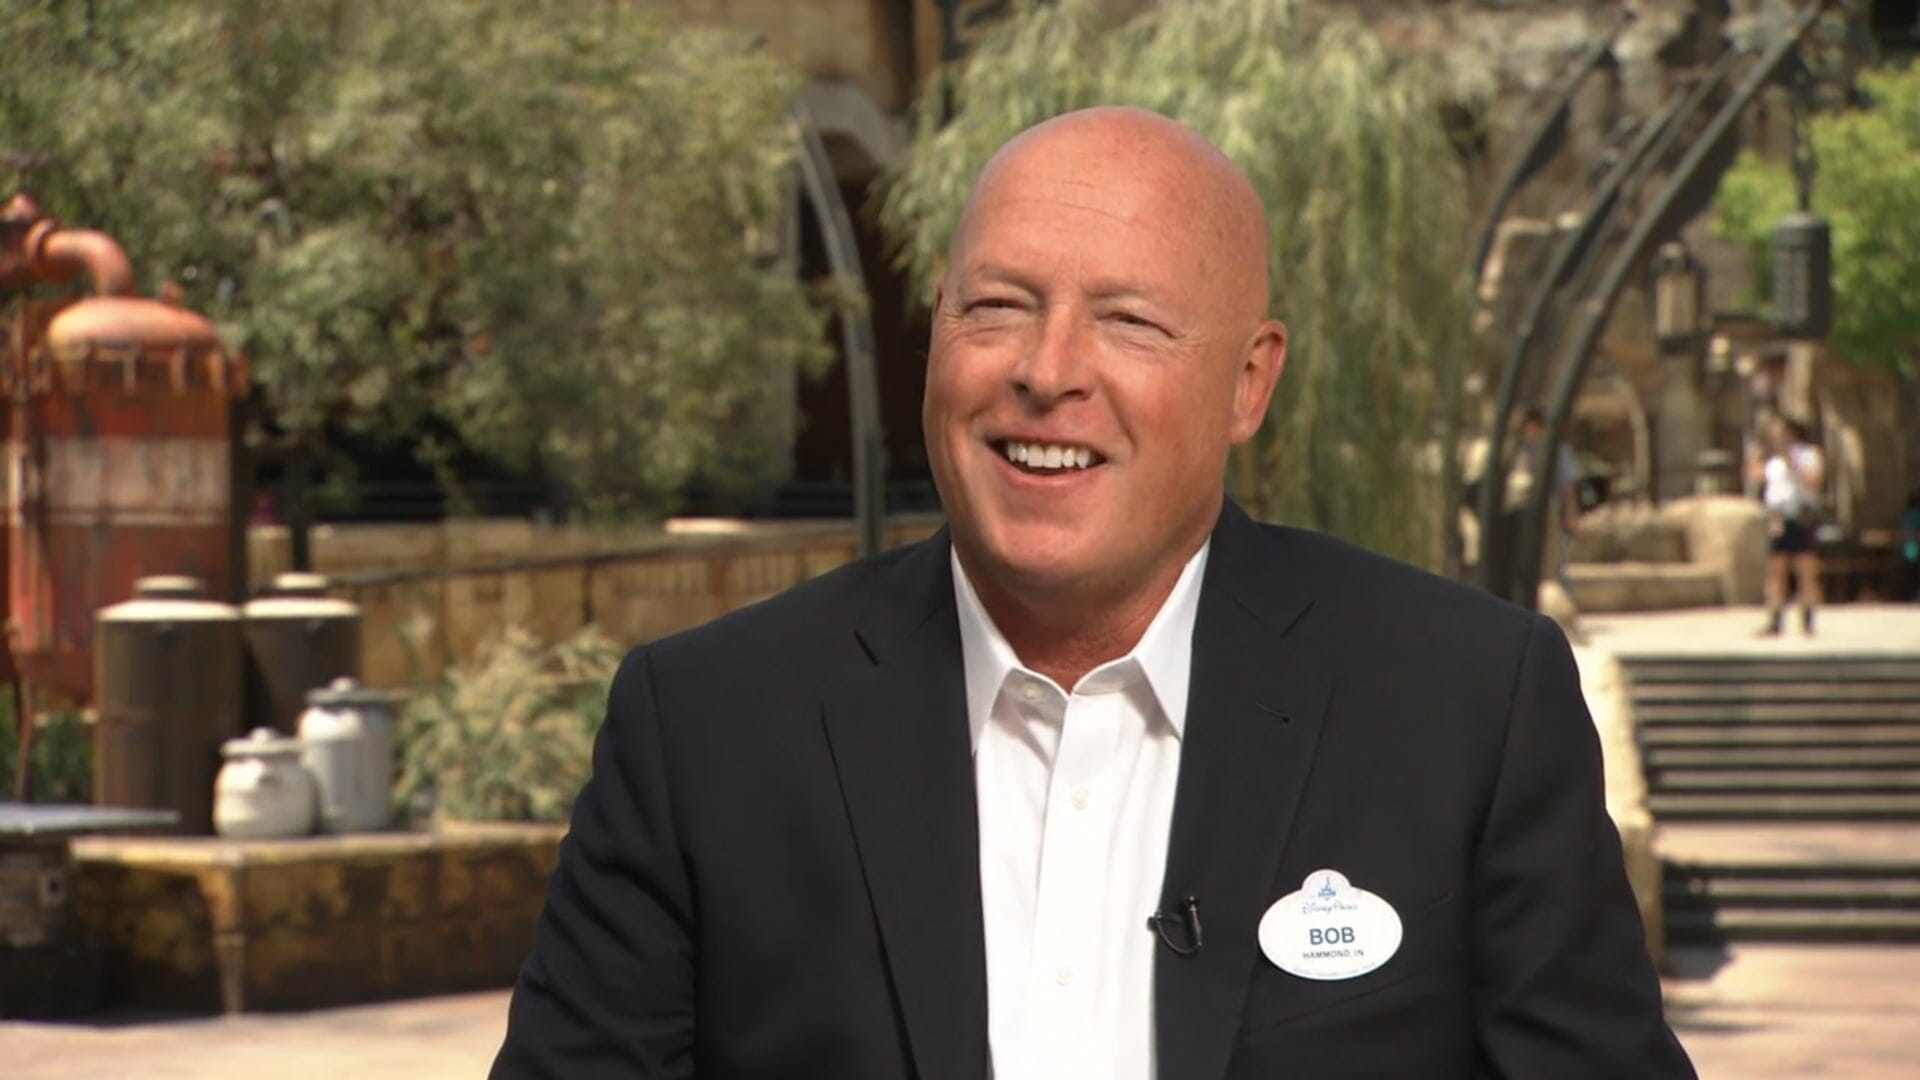 Bob Chapek Speaks About the Future of Disney and Says Park Reservations Are Here to Stay